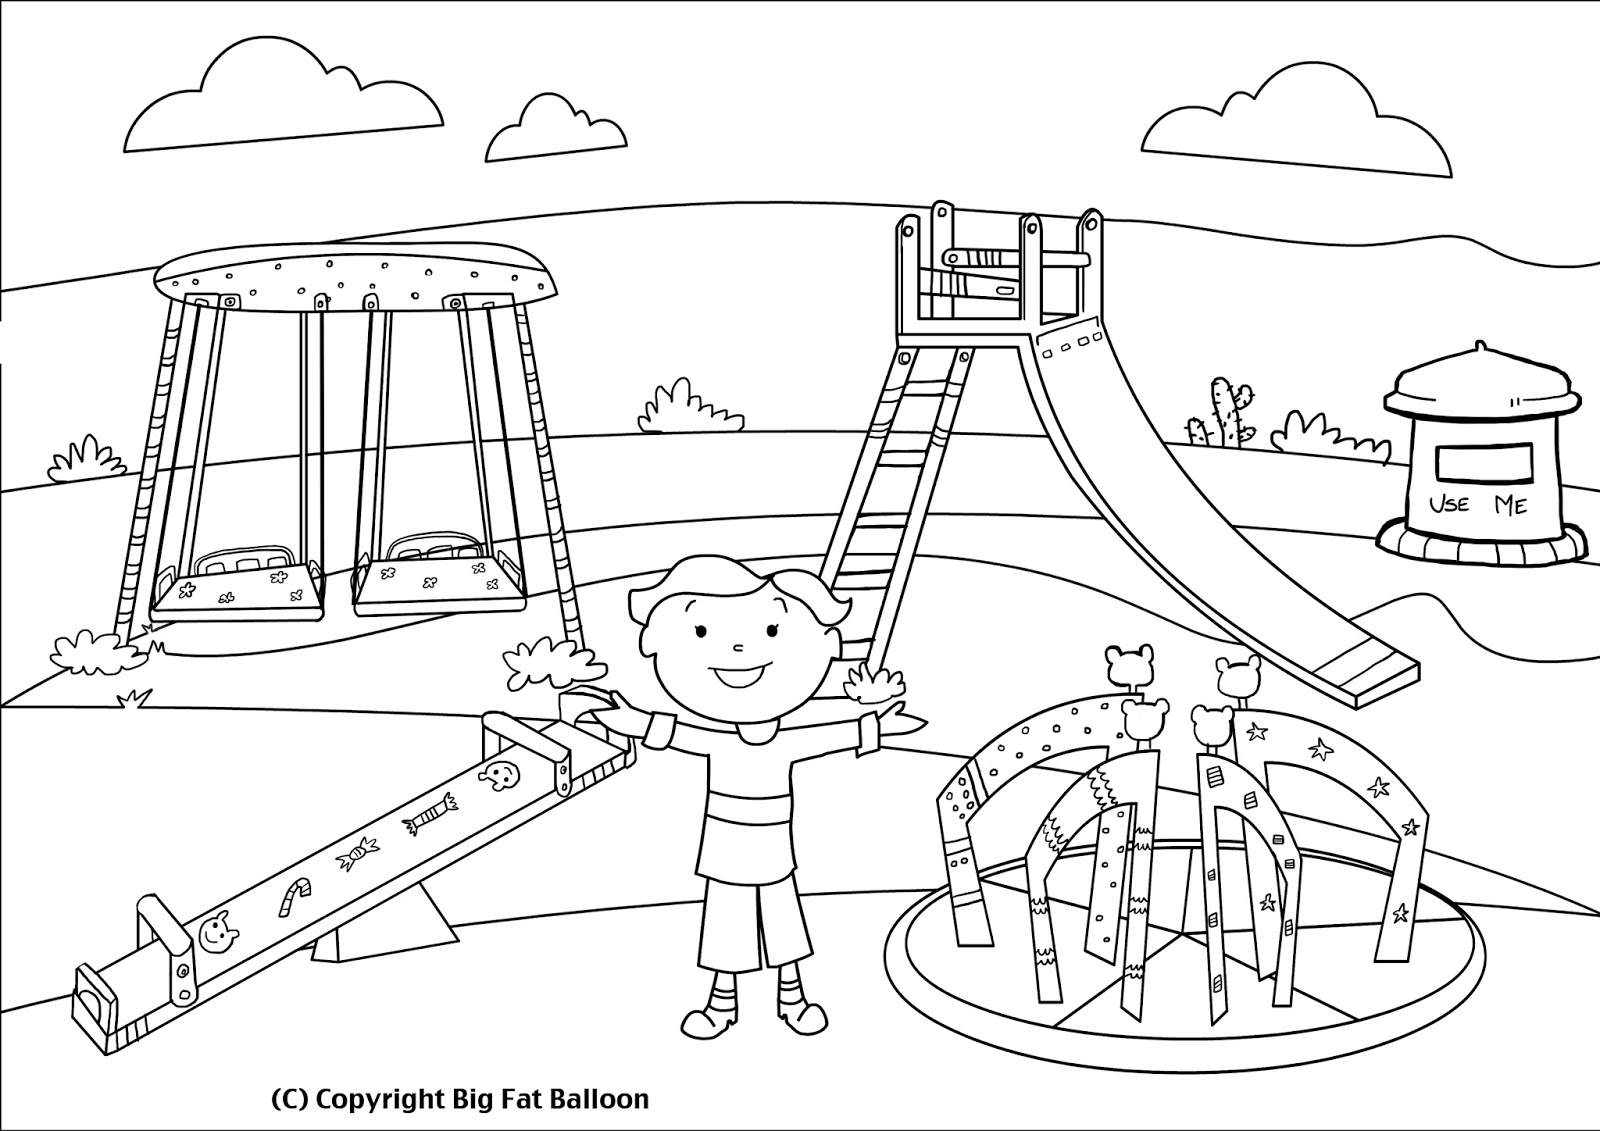 children s page for 2 4 year old sakshi mangal big fat fRG1ih clipart additionally kit kittredge american girl coloring page on american girl coloring book together with american girl coloring book 2 on american girl coloring book moreover american girl coloring book 3 on american girl coloring book in addition adult horror movie coloring book on american girl coloring book